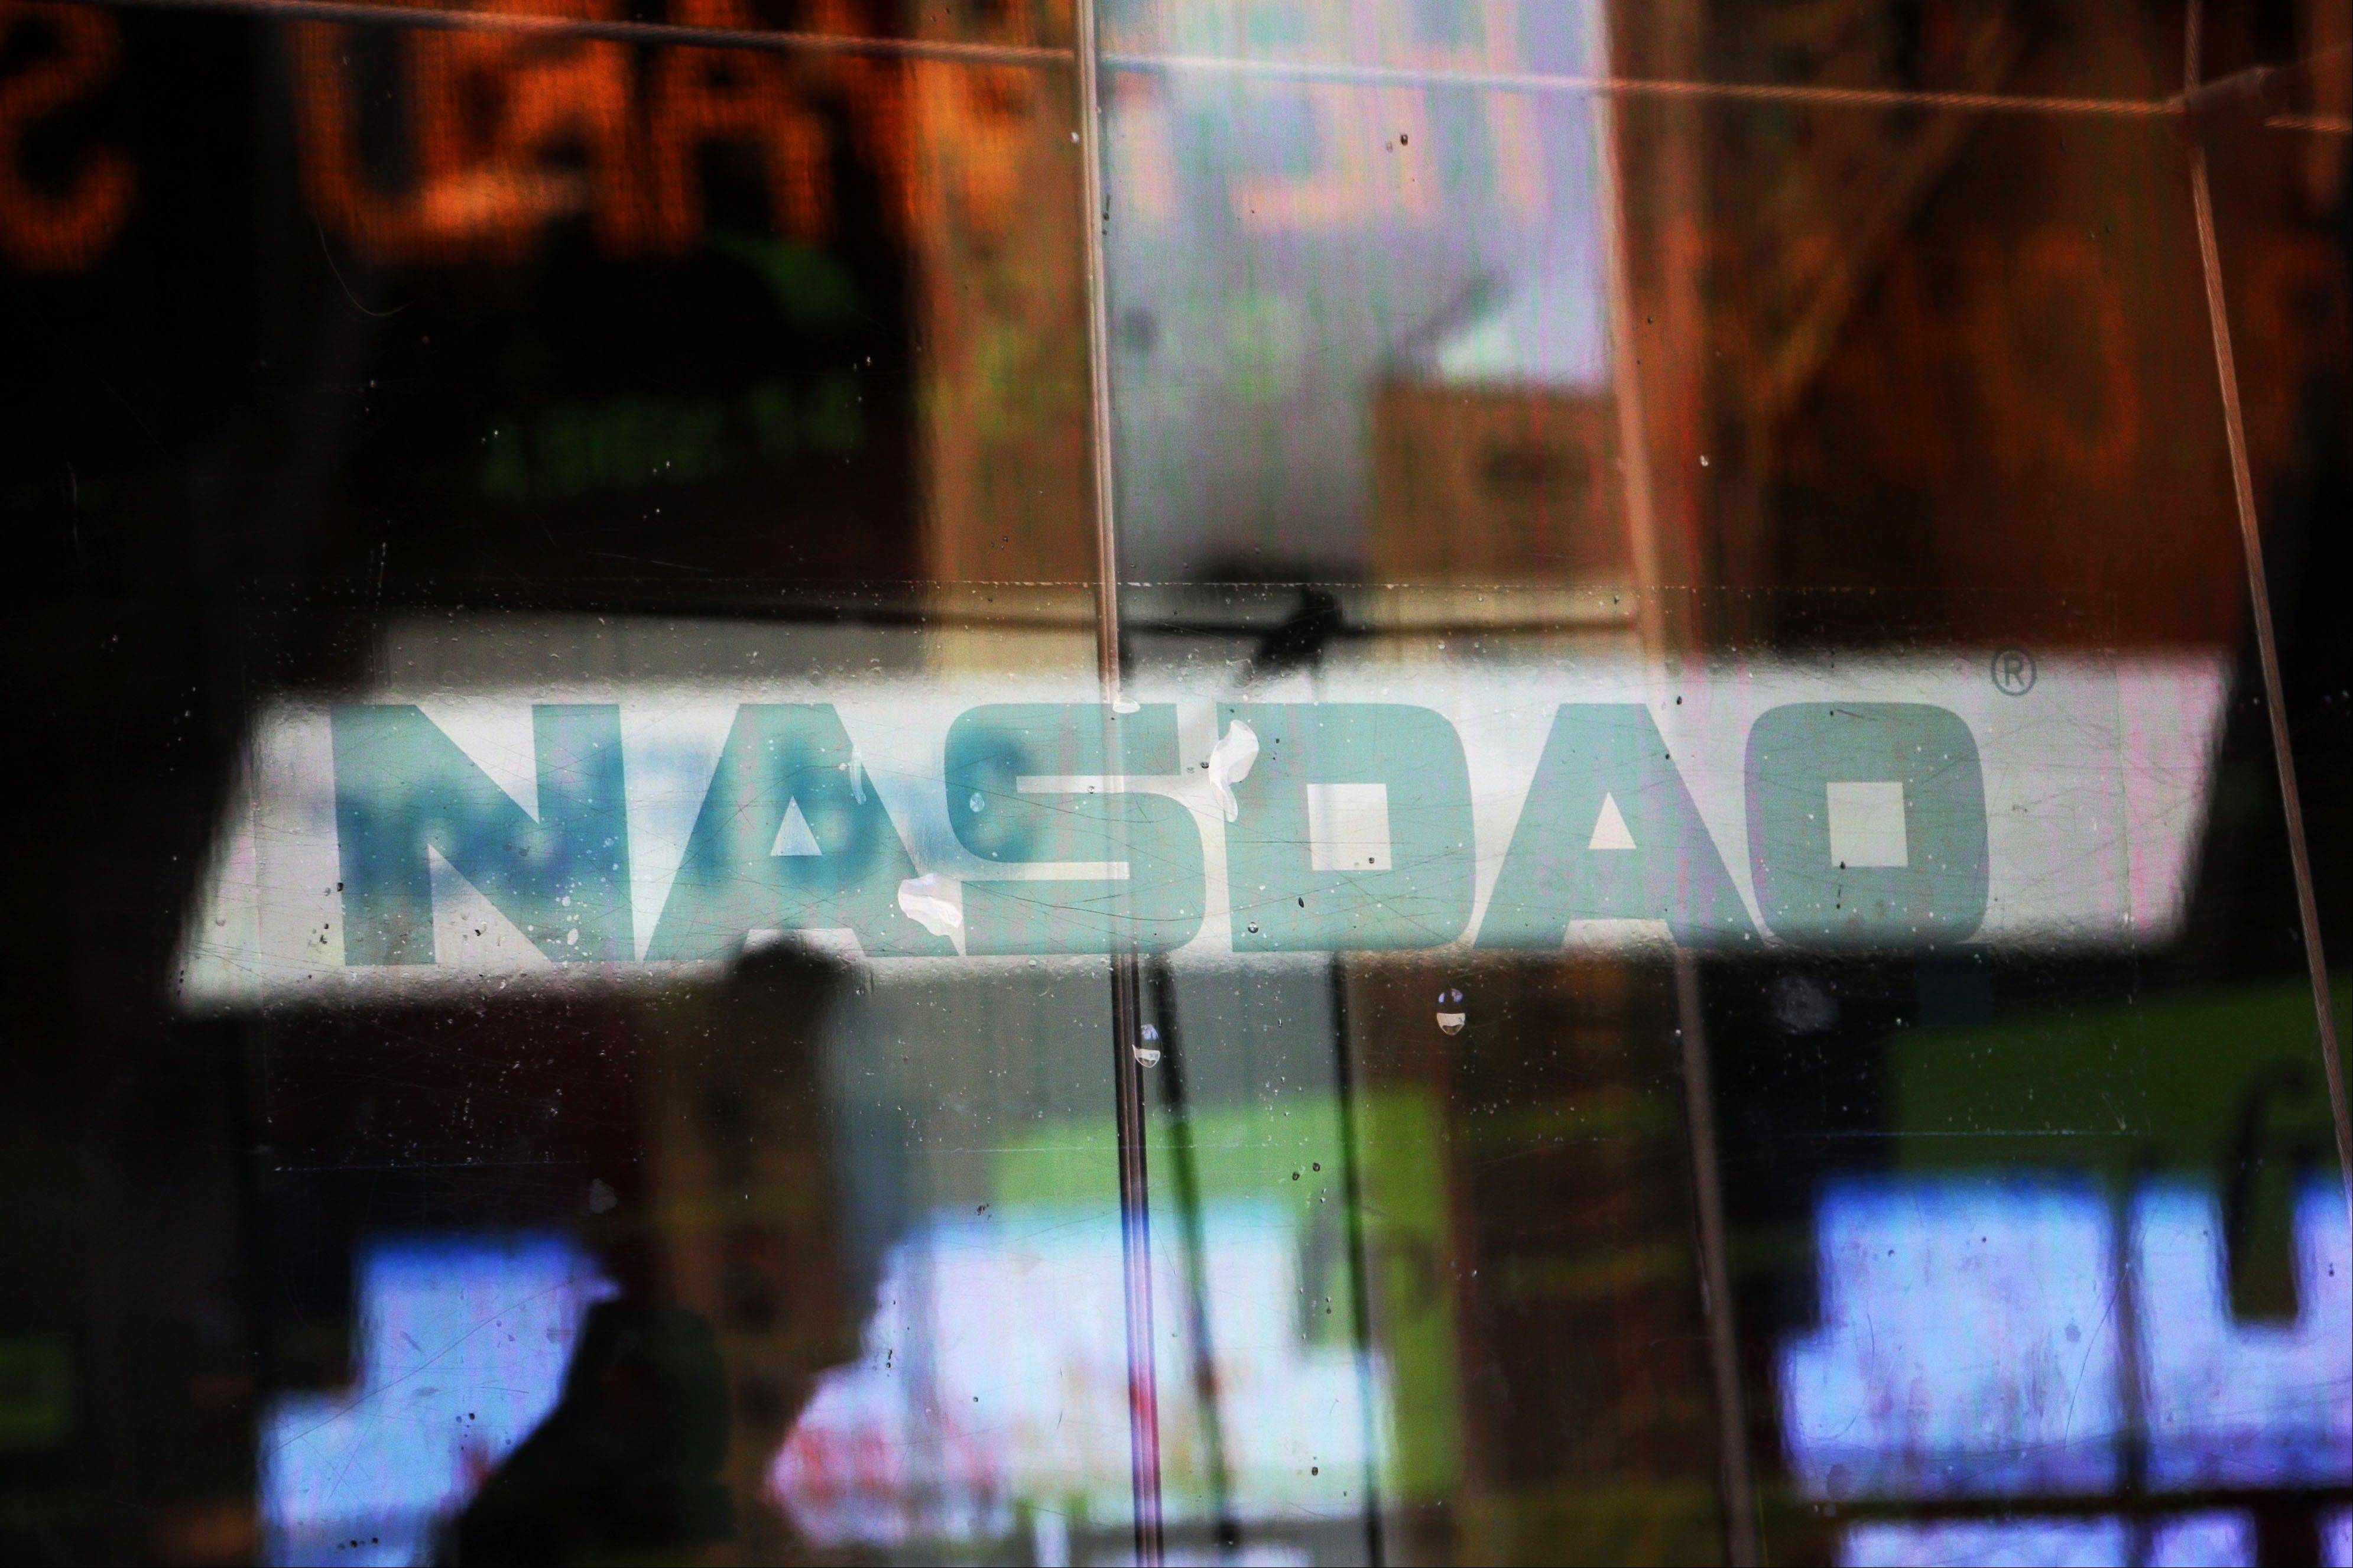 The Nasdaq Composite is up 35 percent in 2013, but while other major indexes like the Dow Jones industrial average and Standard & Poor�s 500 have celebrated all-time highs again and again, the Nasdaq remains 20 percent below its dot-com peak of 5,048.62.